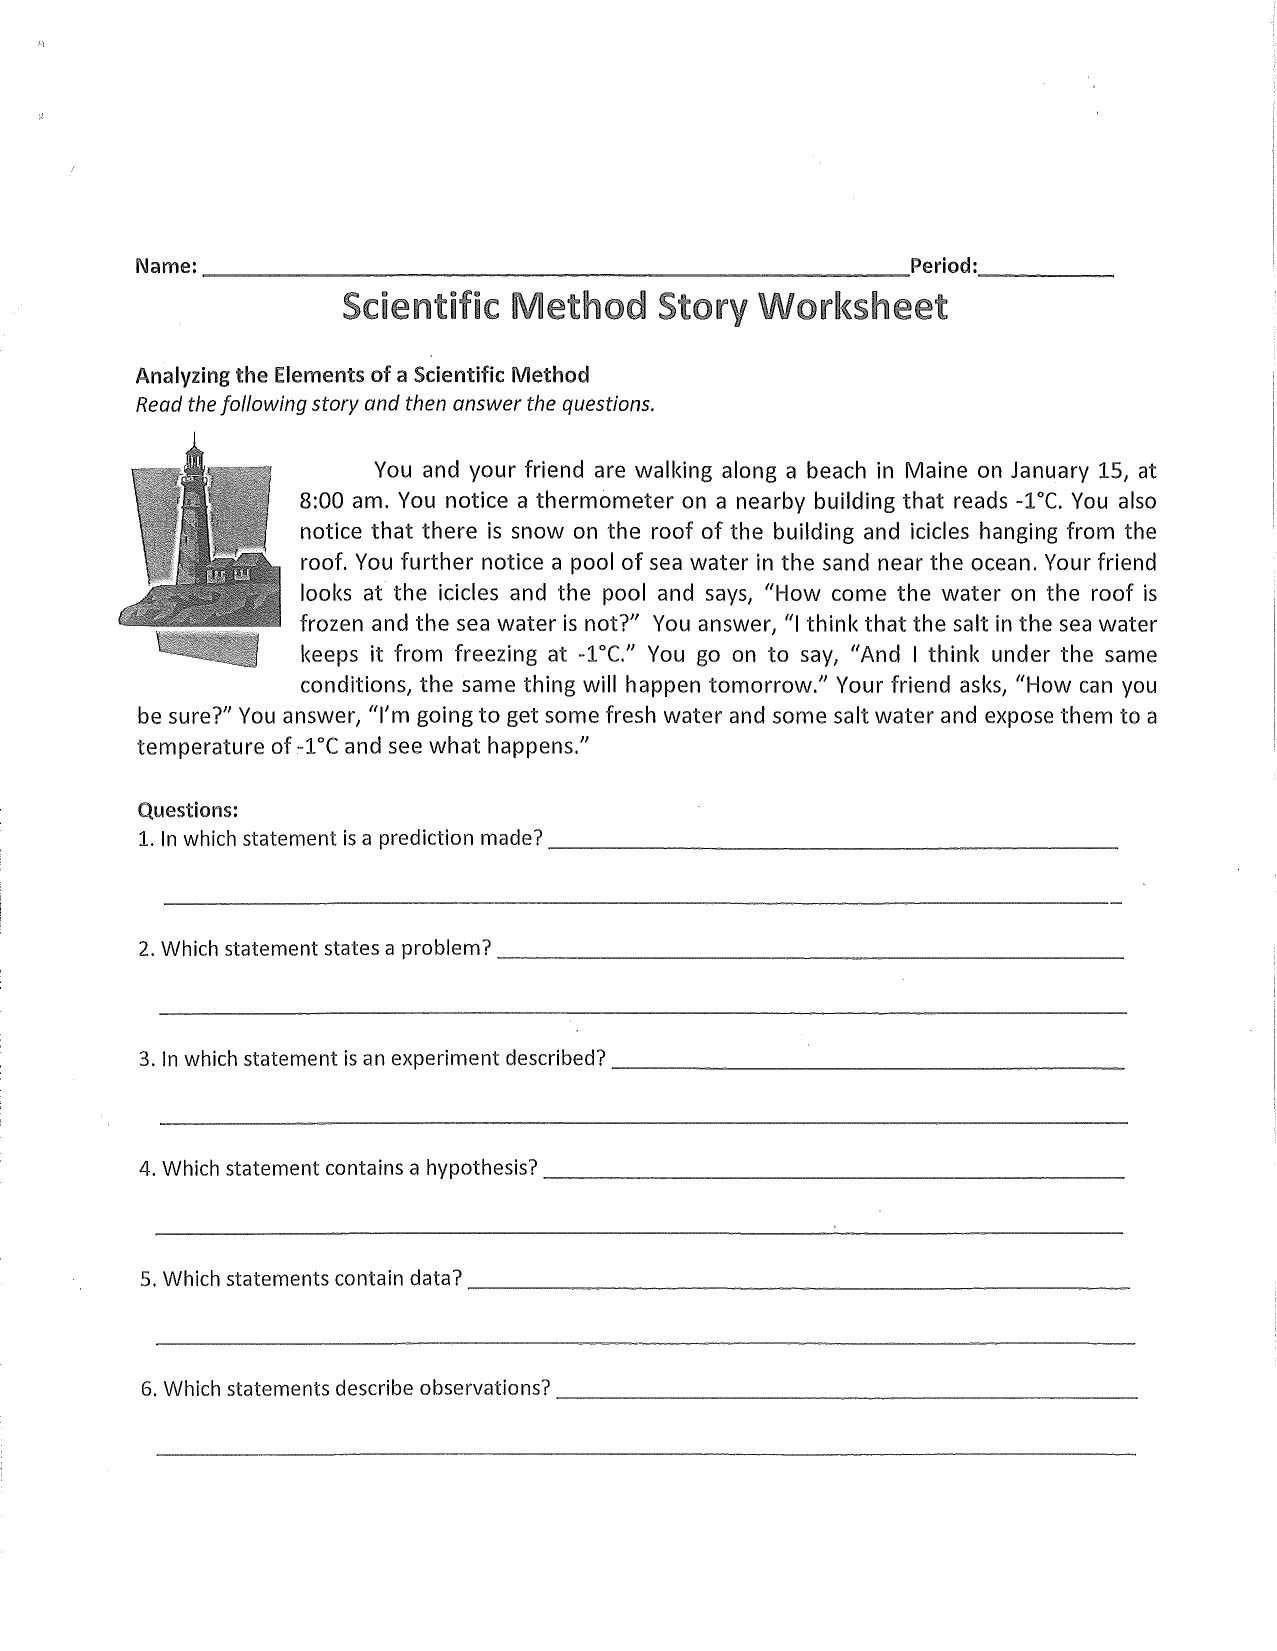 Scientific Method Practice Worksheet Answers